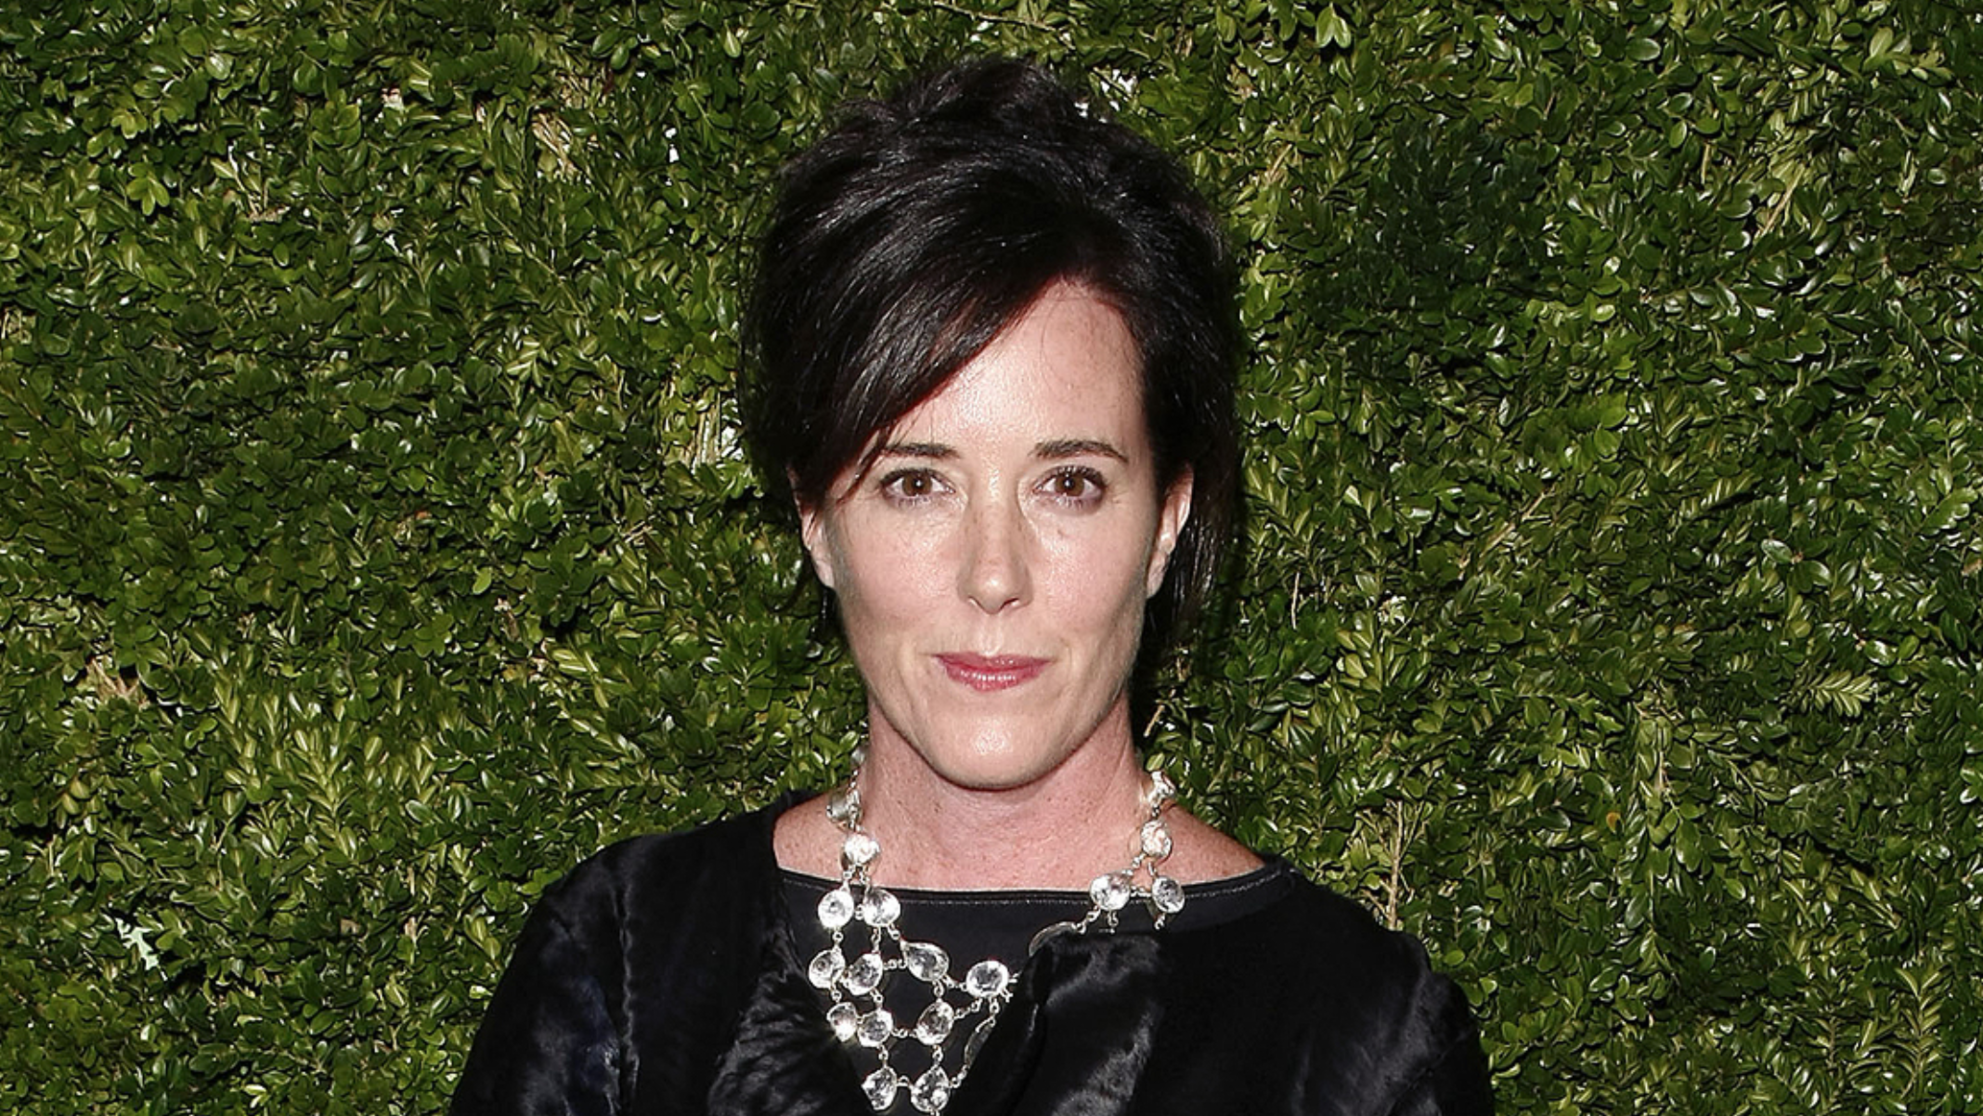 Kate Spade Suffered from Depression and Anxiety: How the Conditions Can Lead to Suicide